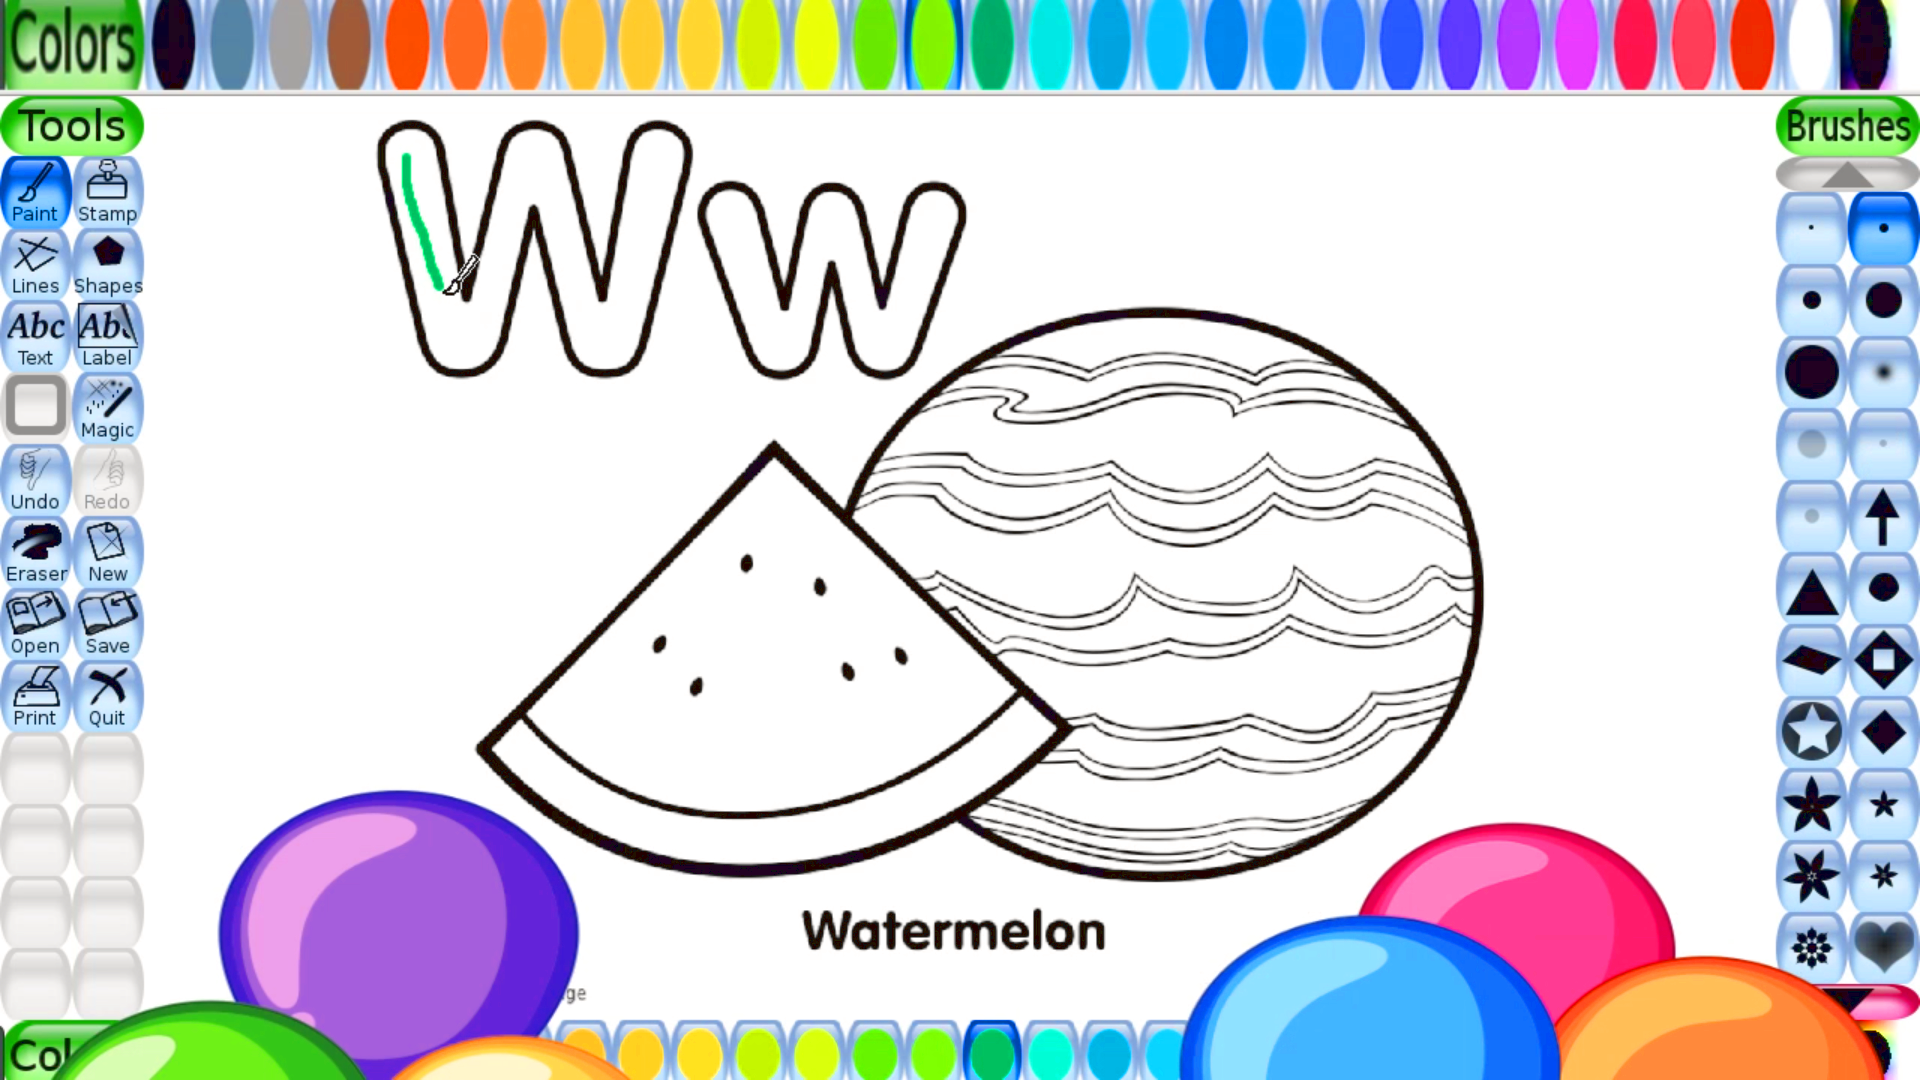 Coloring Pages For Kids Alphabet Letter W Coloring Sheets Watermelon Coloring Pictures Free Co Alphabet For Kids Color Activities Coloring Pages For Kids [ 1080 x 1920 Pixel ]